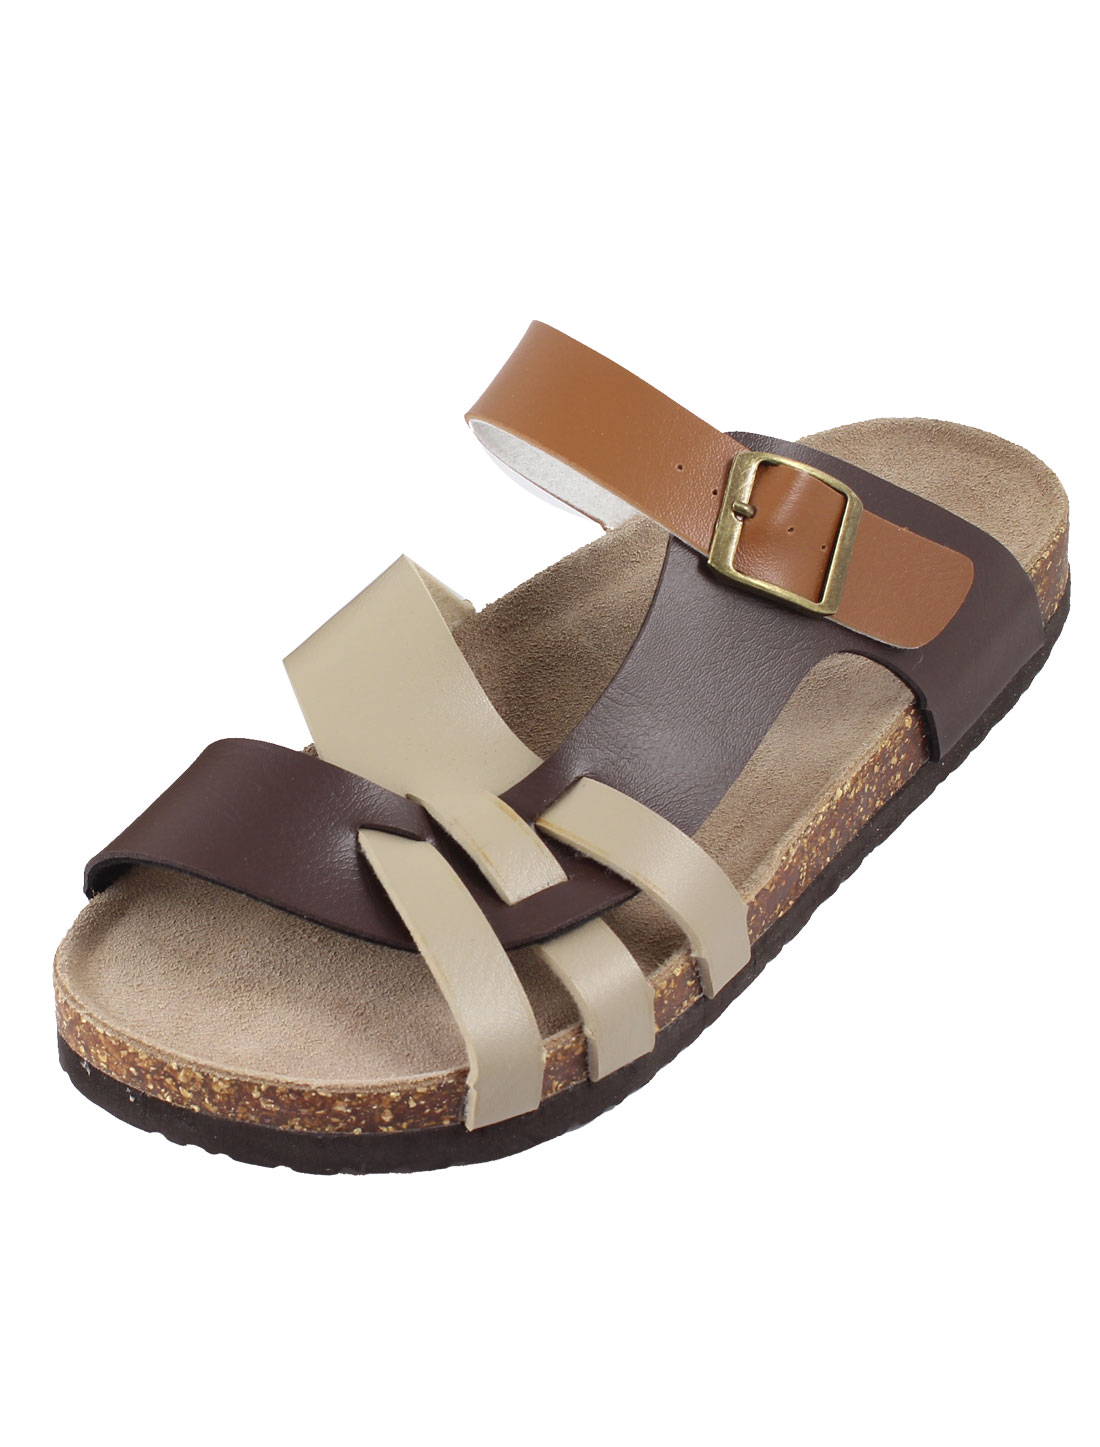 X099 Mens Stylish Slip-on Cross Strap Sandals Coffee Color Brown 43